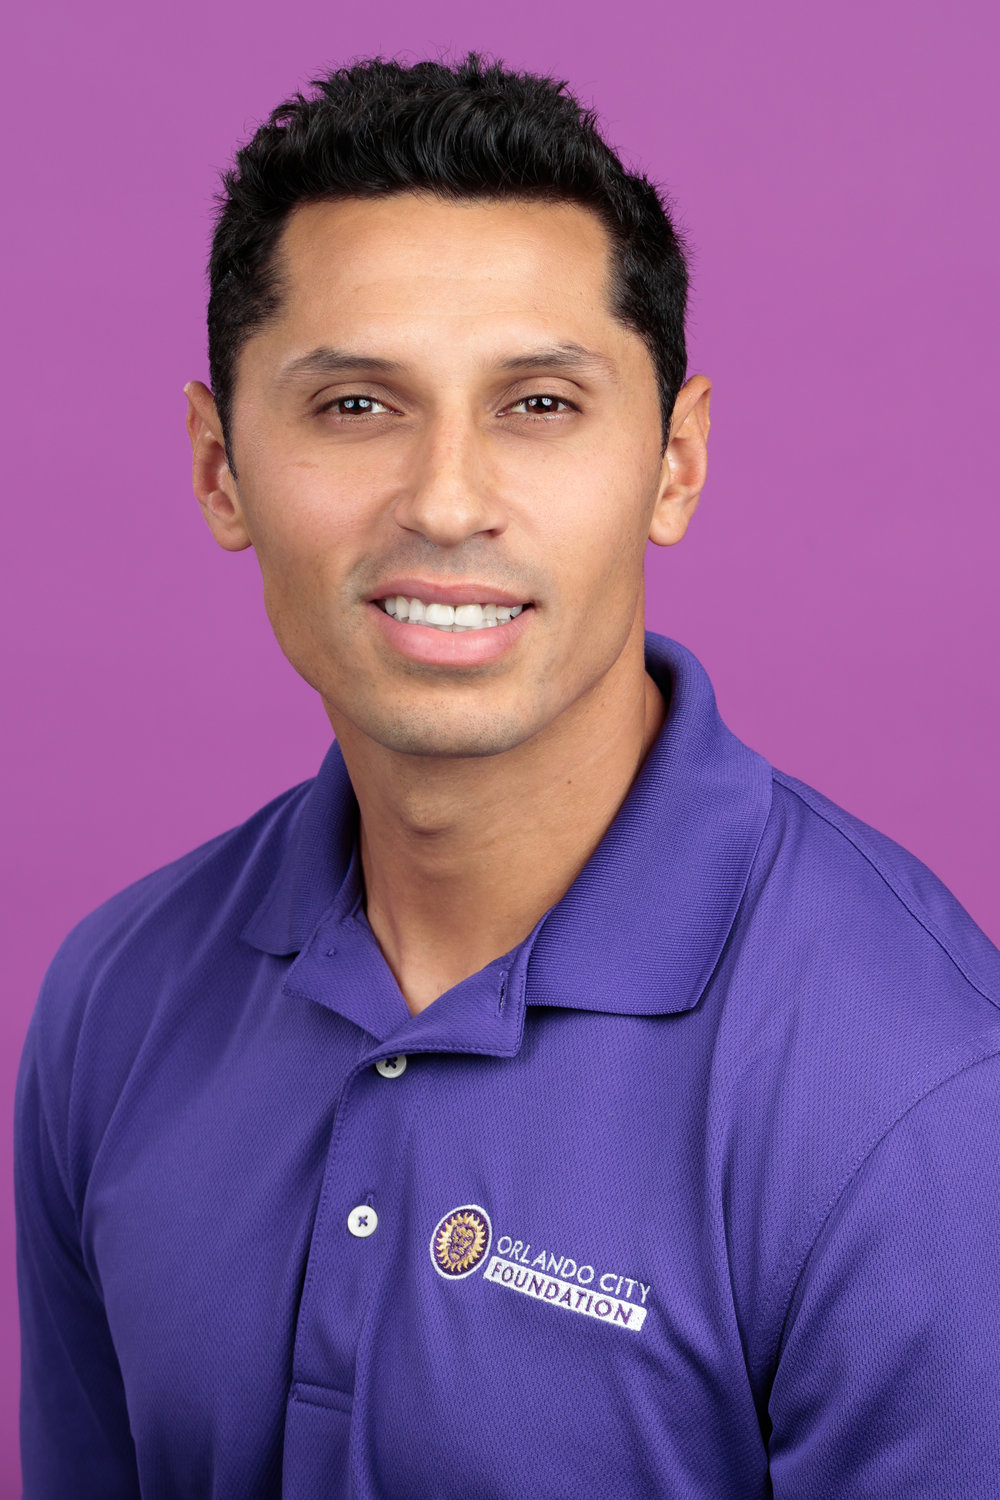 Miguel Gallardo - Kicking It Back Programs Manager & Community Ambassador